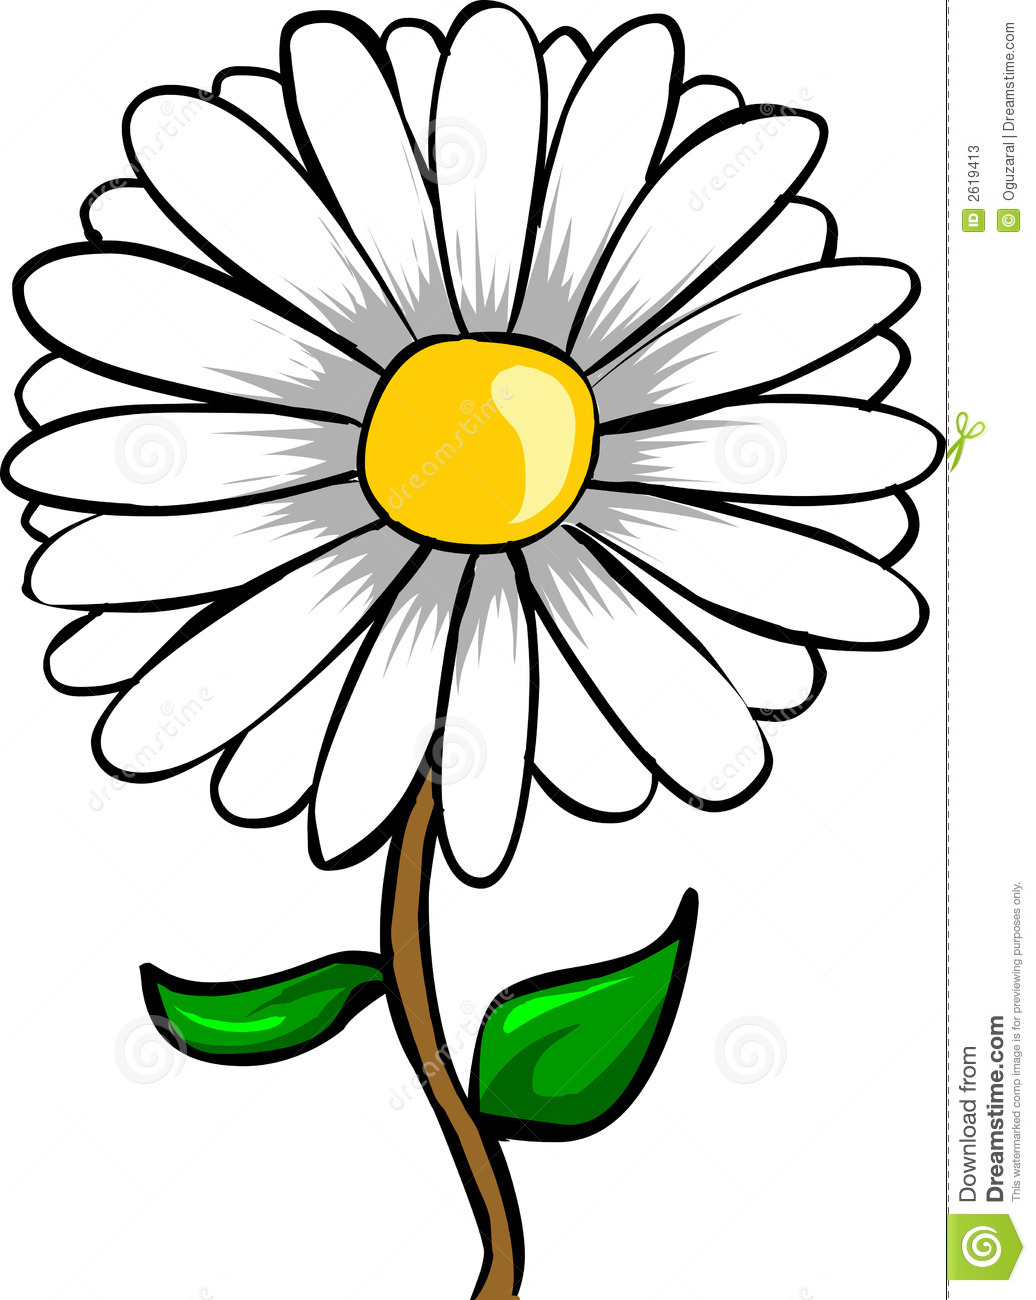 Free Daisy Clipart Free Download Best Free Daisy Clipart On